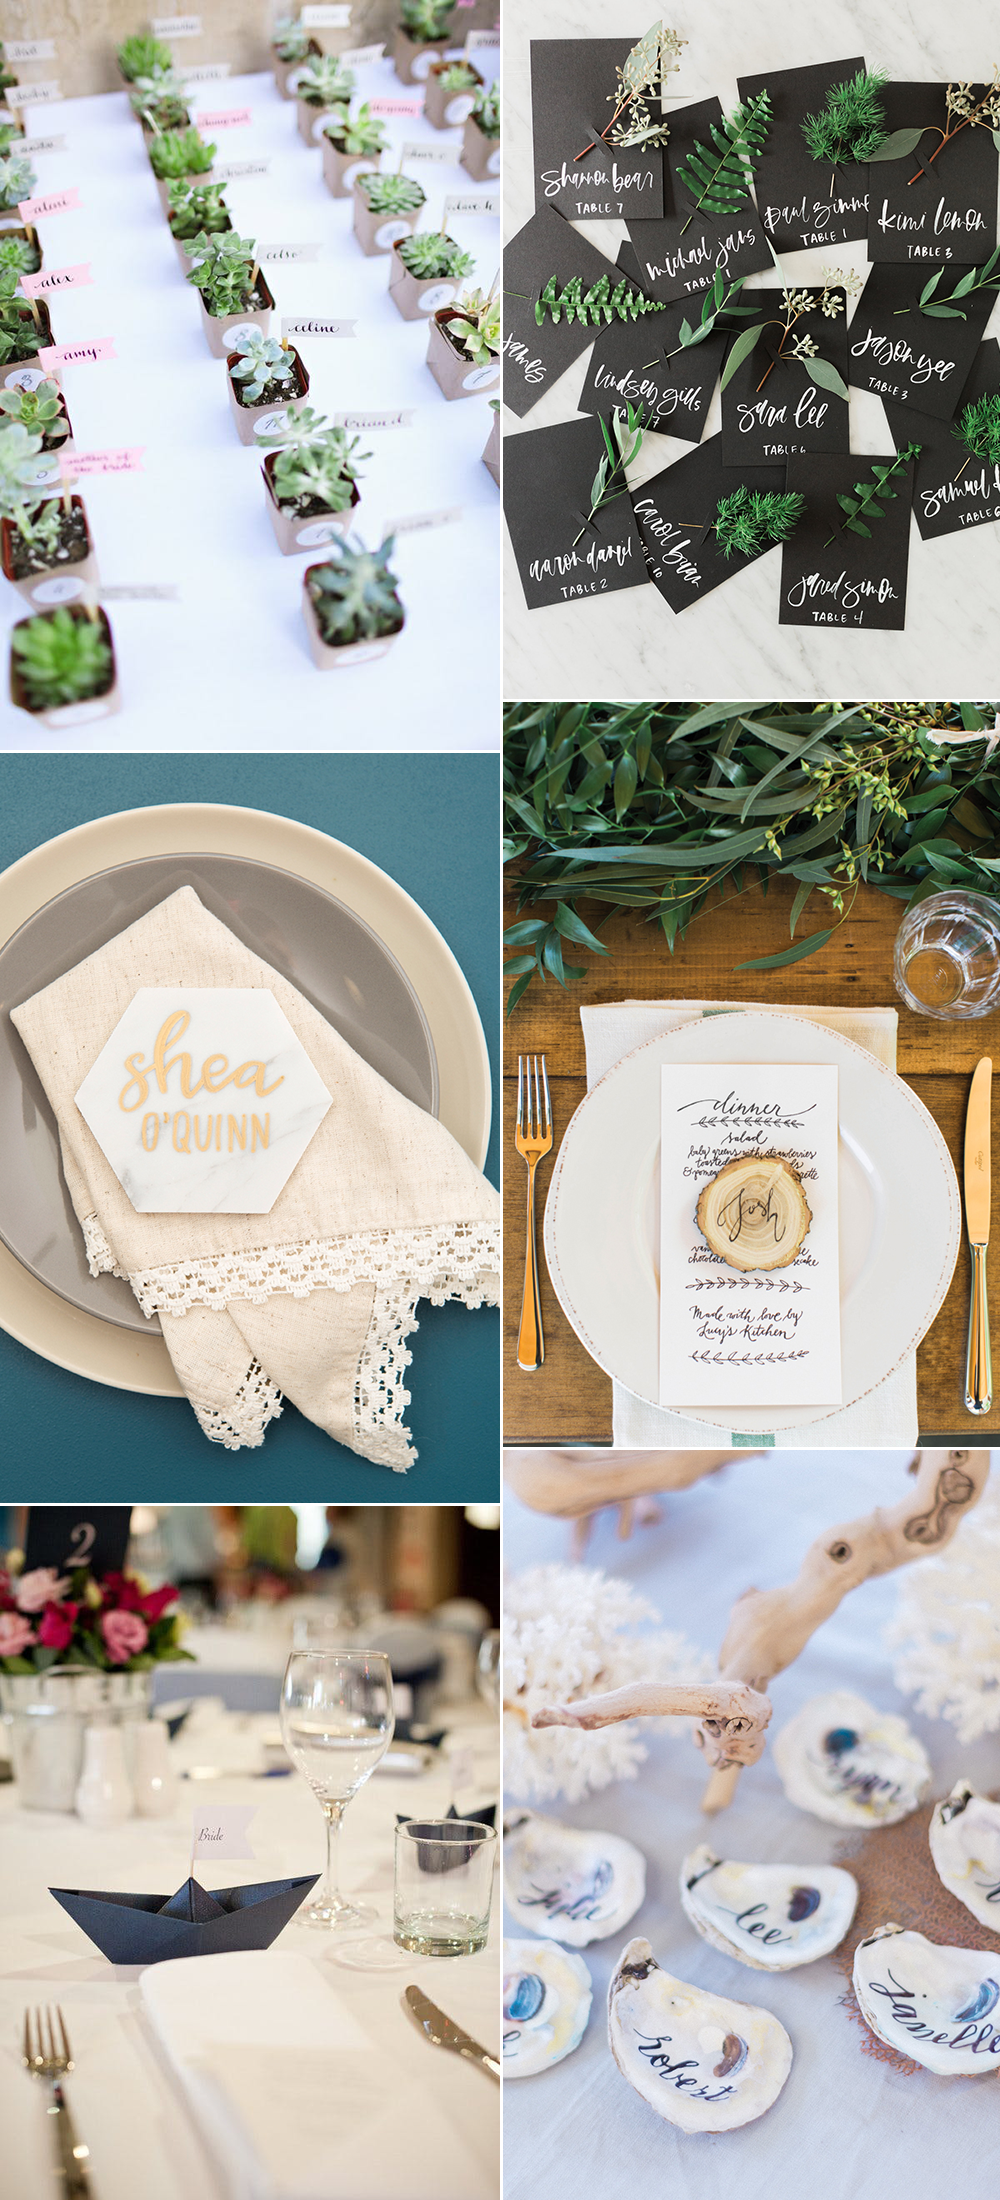 we love Wedding: Place Cards | we love handmade